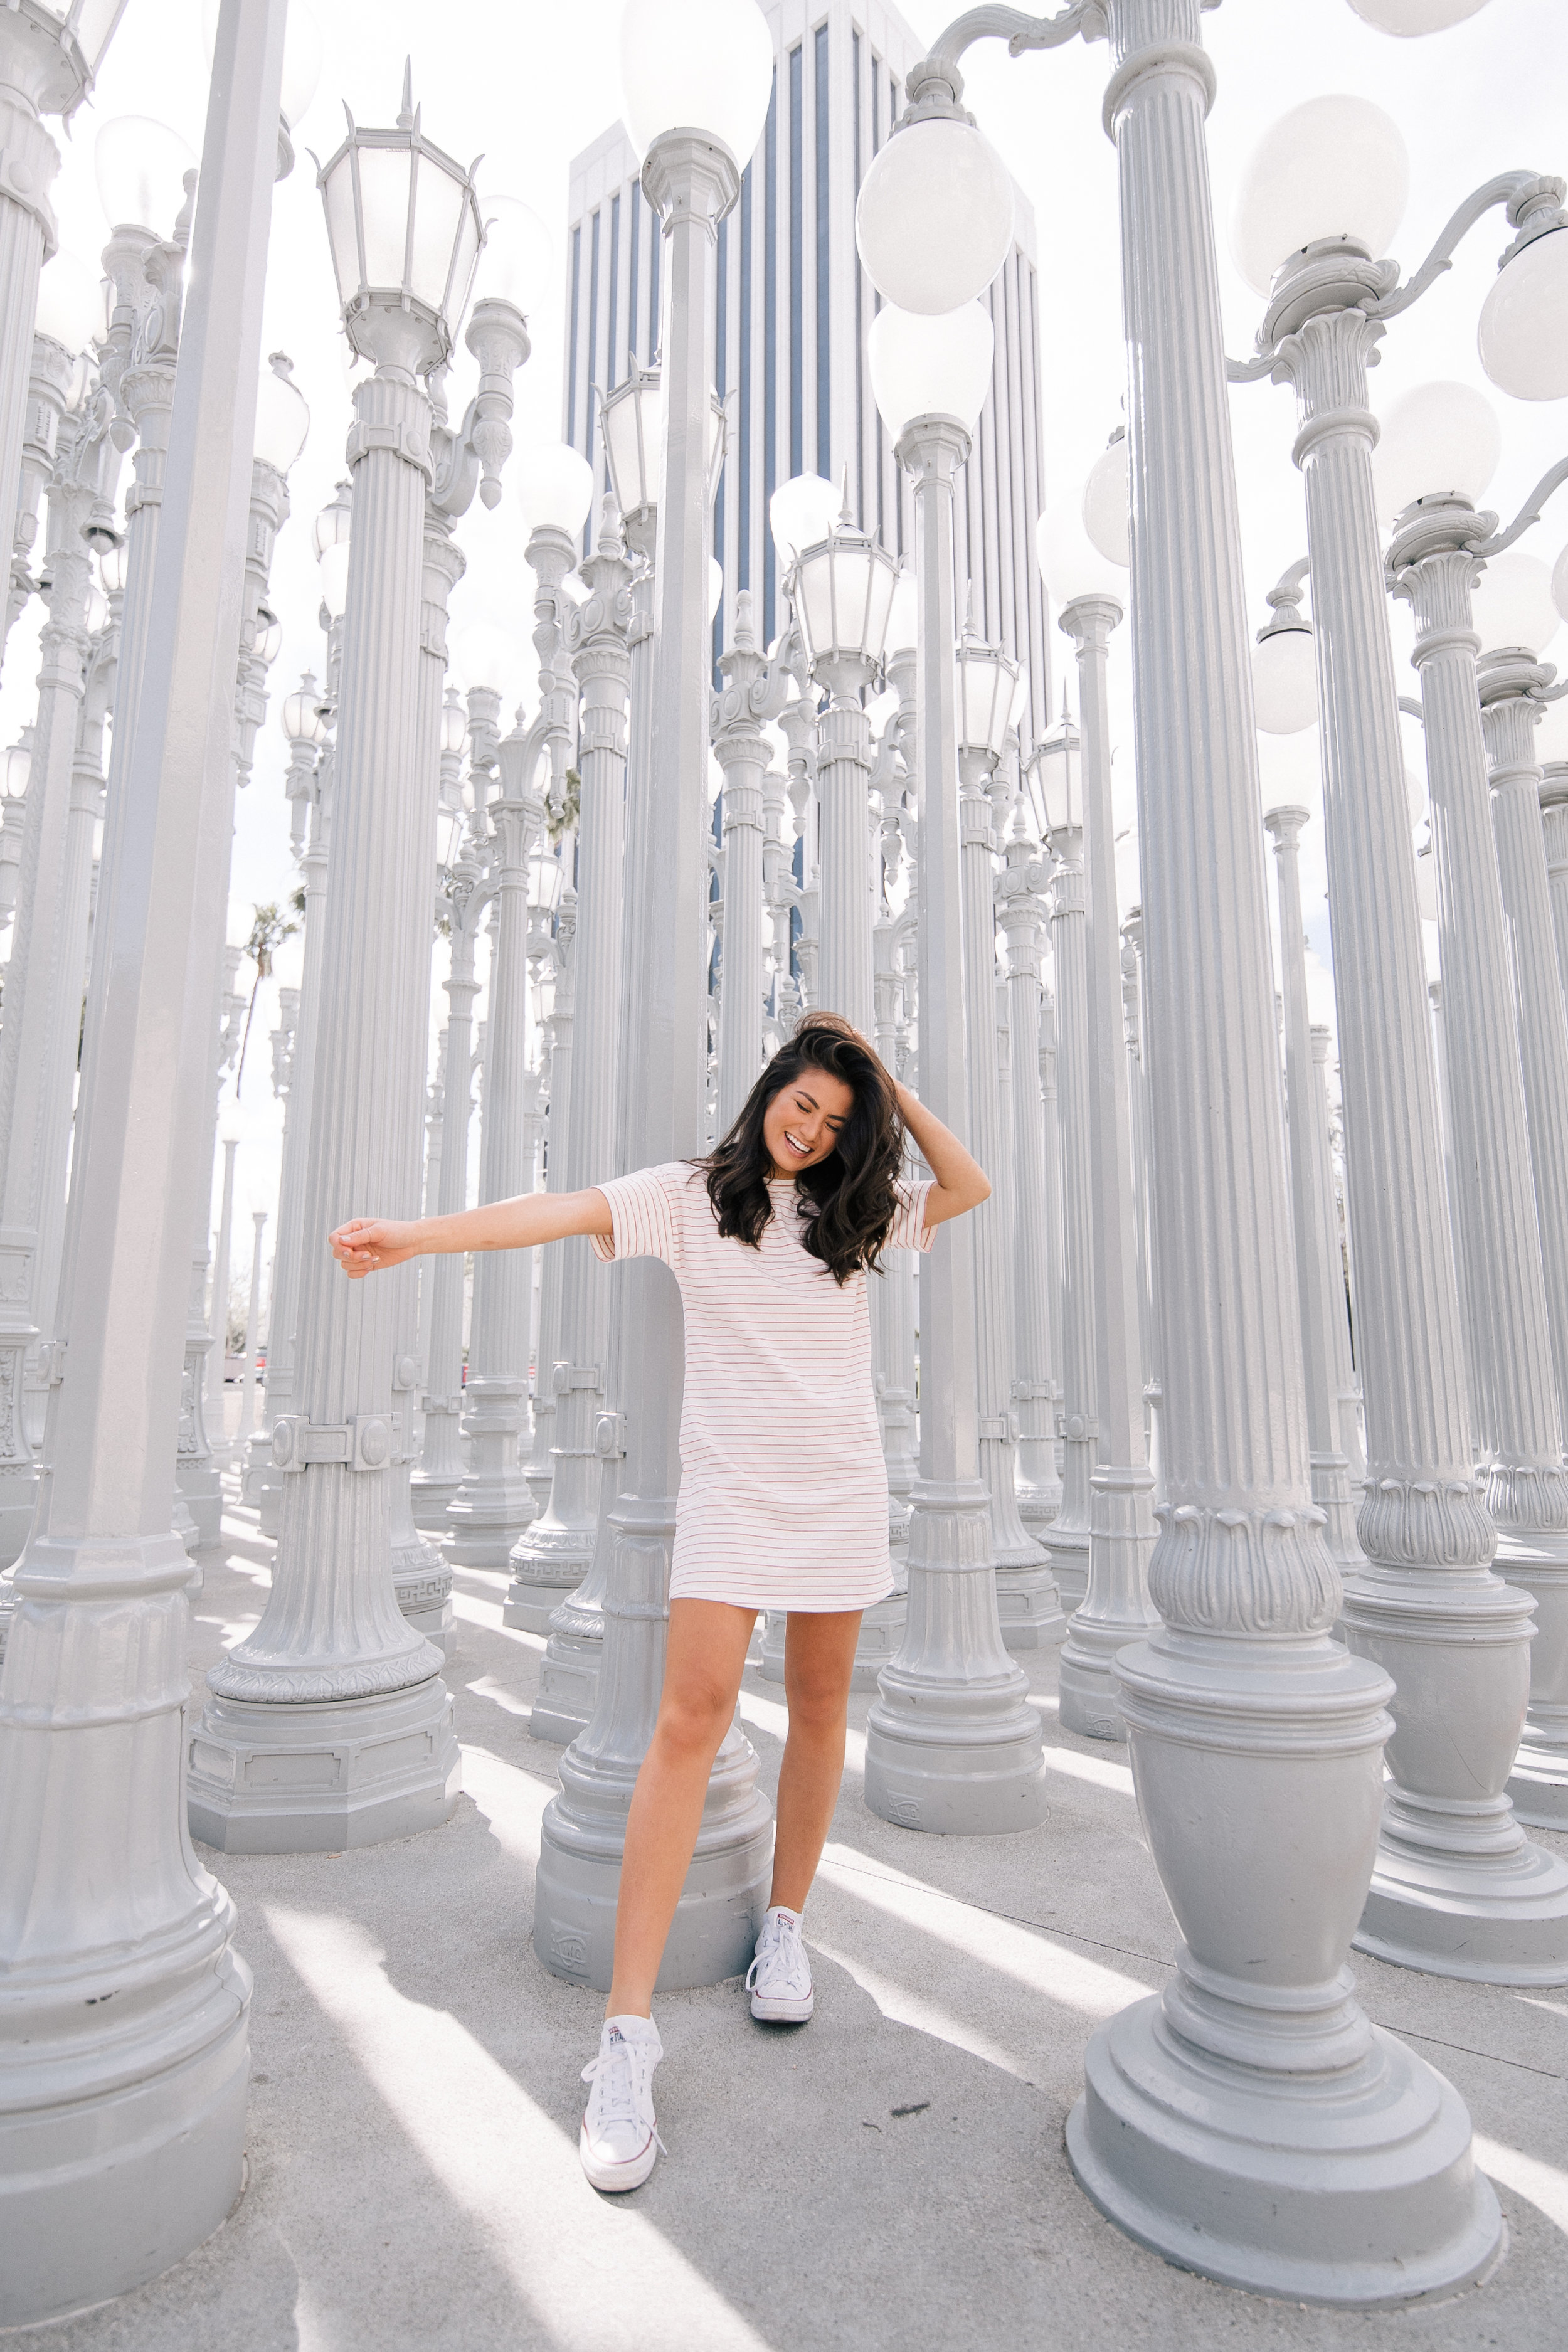 Caila Quinn The Bachelor Travel Blogger LA Guide to Los Angeles California Visit